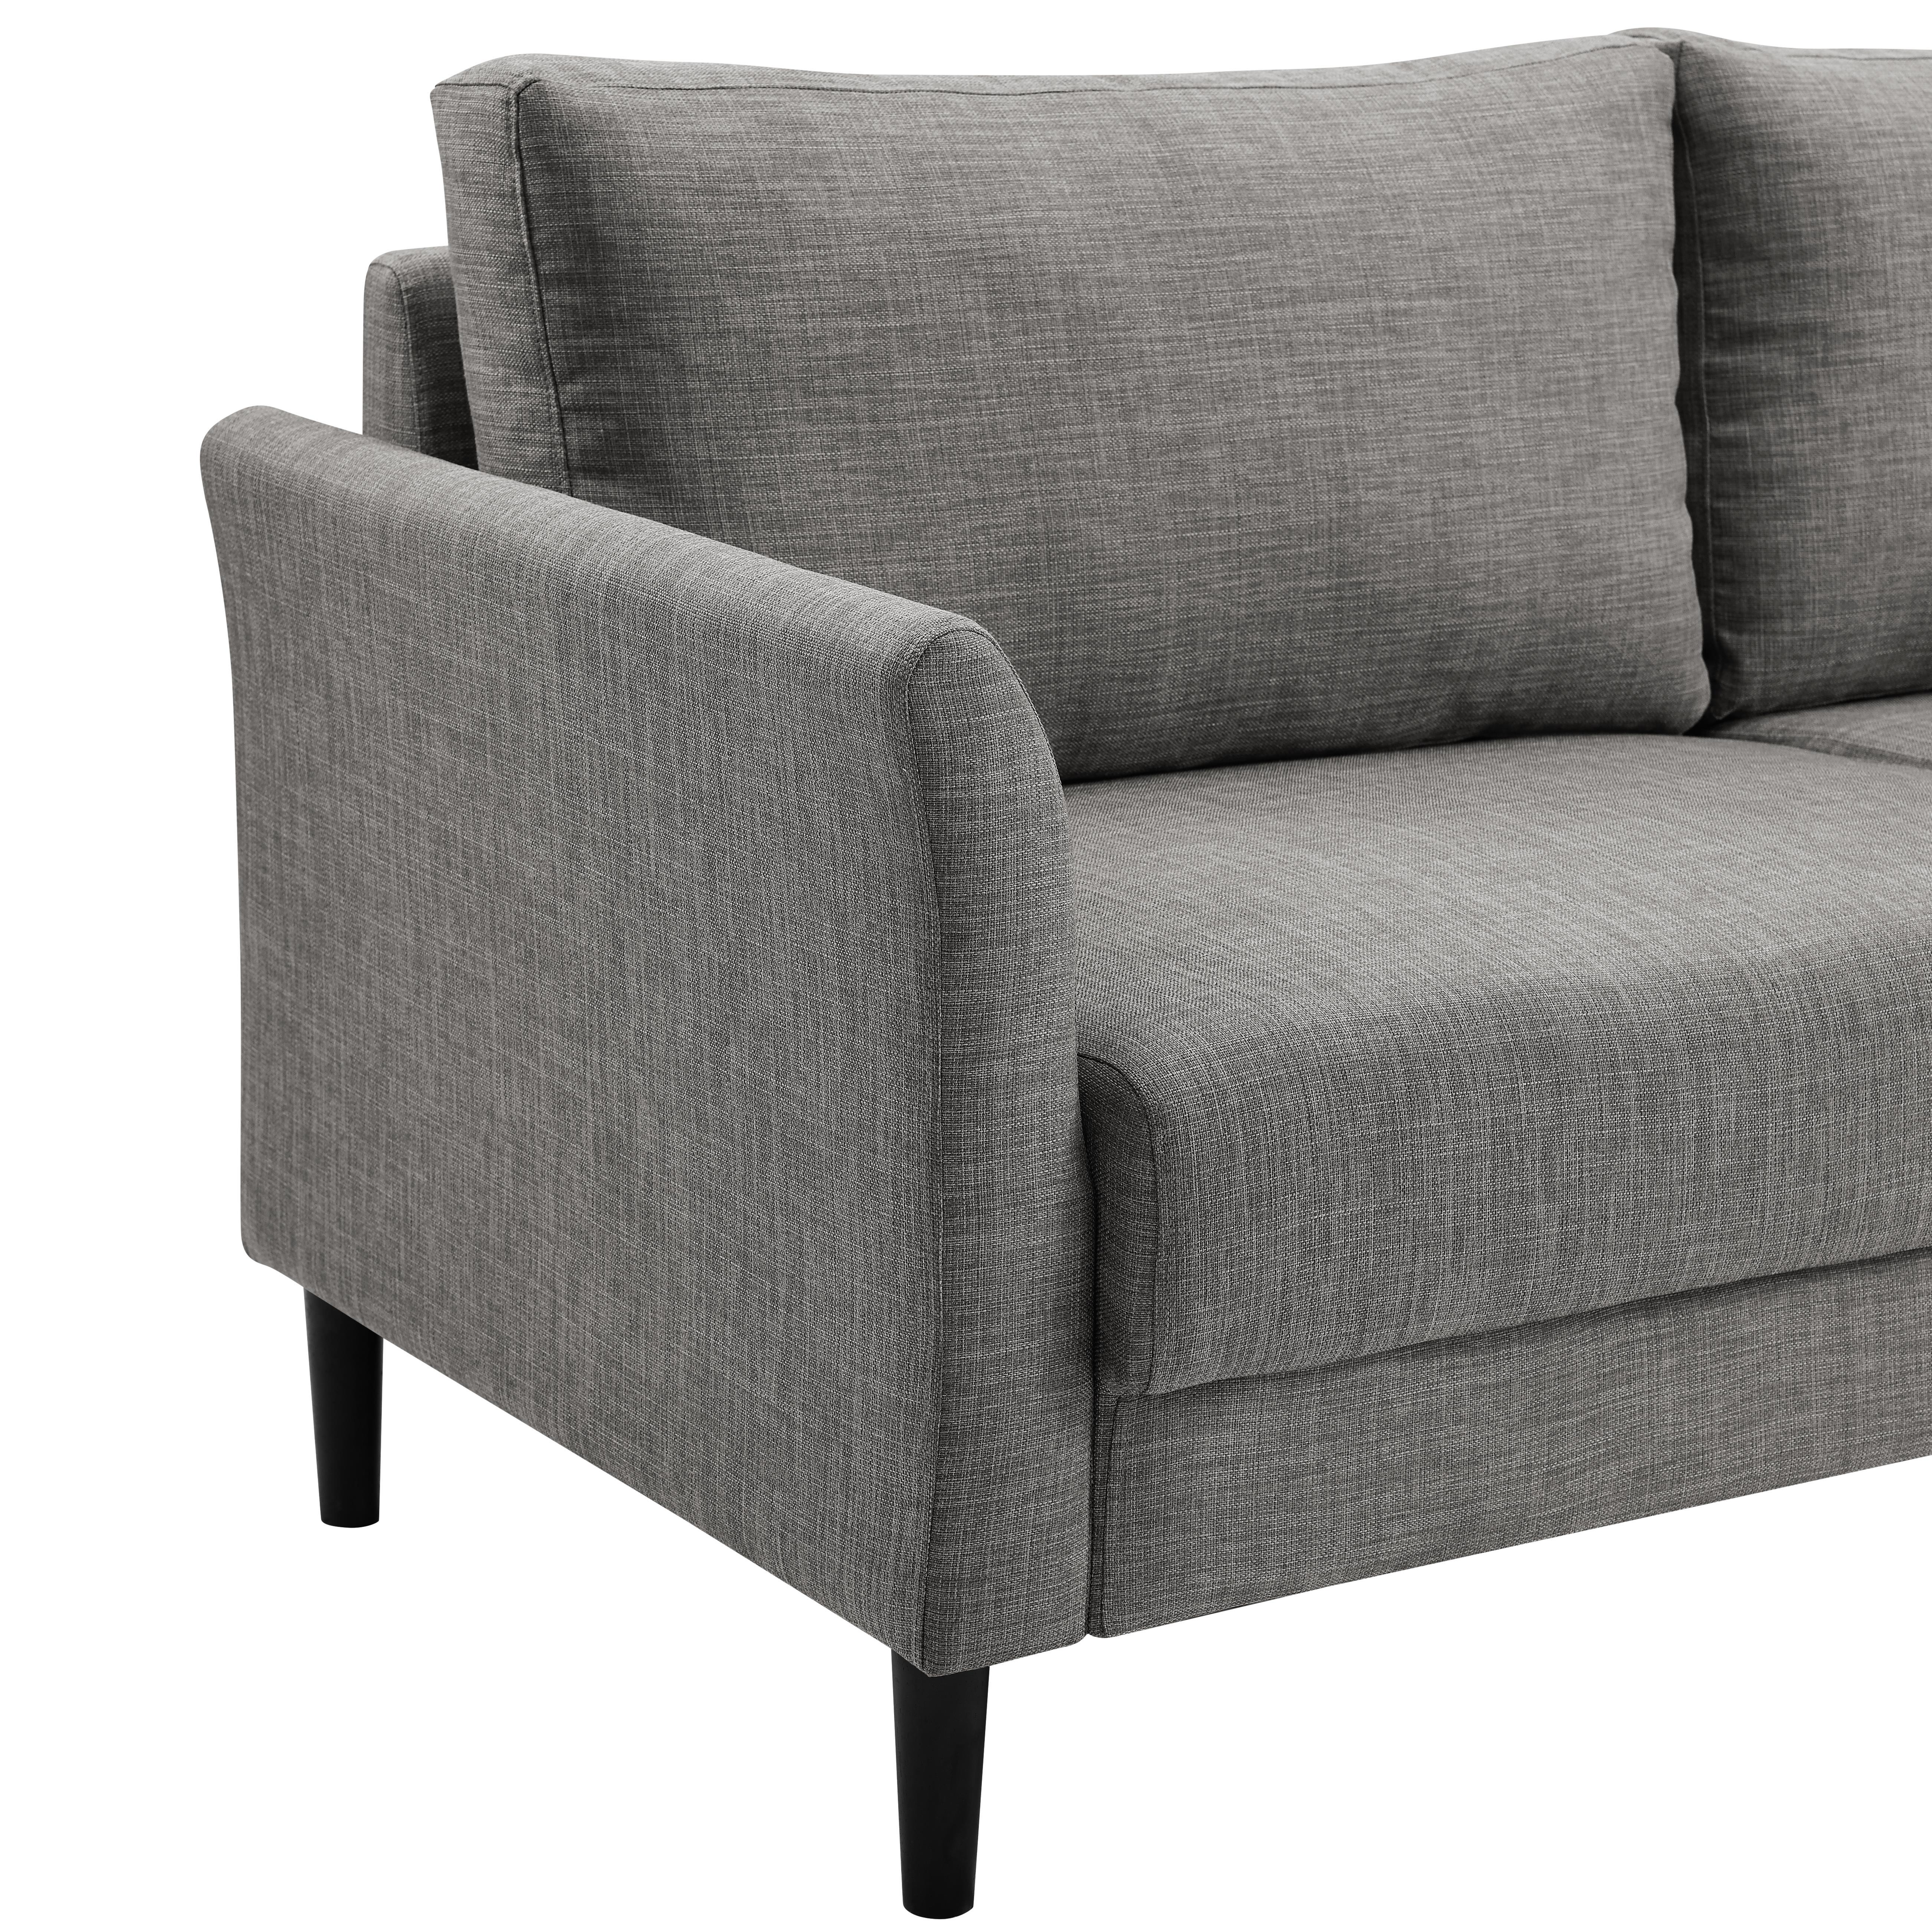 Naomi Home Claire Loveseat Amp Accent Chair From 489 9900